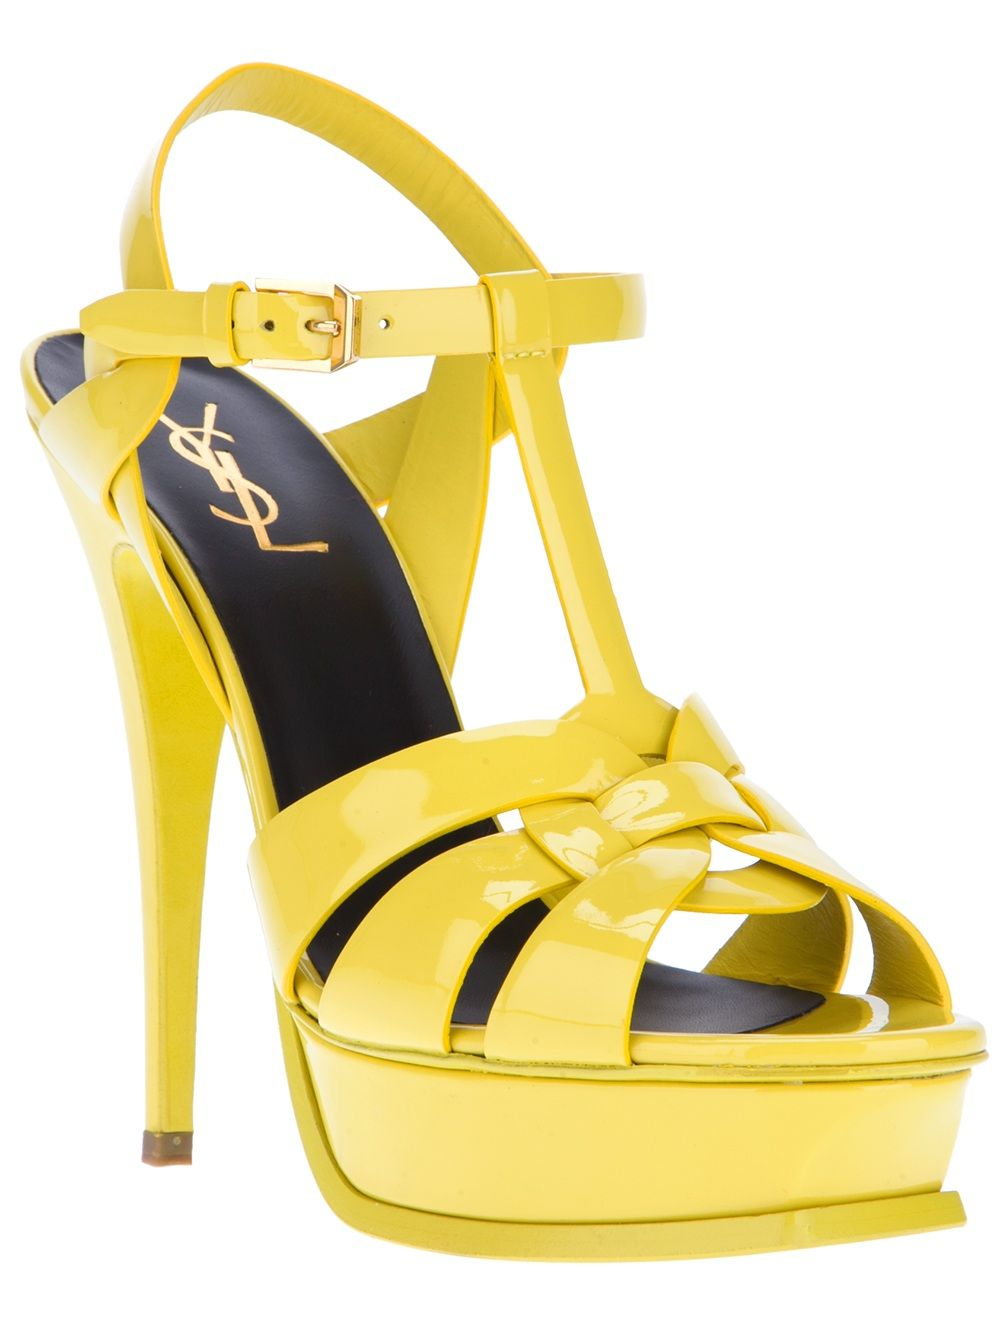 Ysl sandals shoes - Yellow Is The Big Color For This Spring And Summer Still A Timeless Piece That Will Not Be Outdated These Yellow Ysl Sandals Are On My List For The Summer